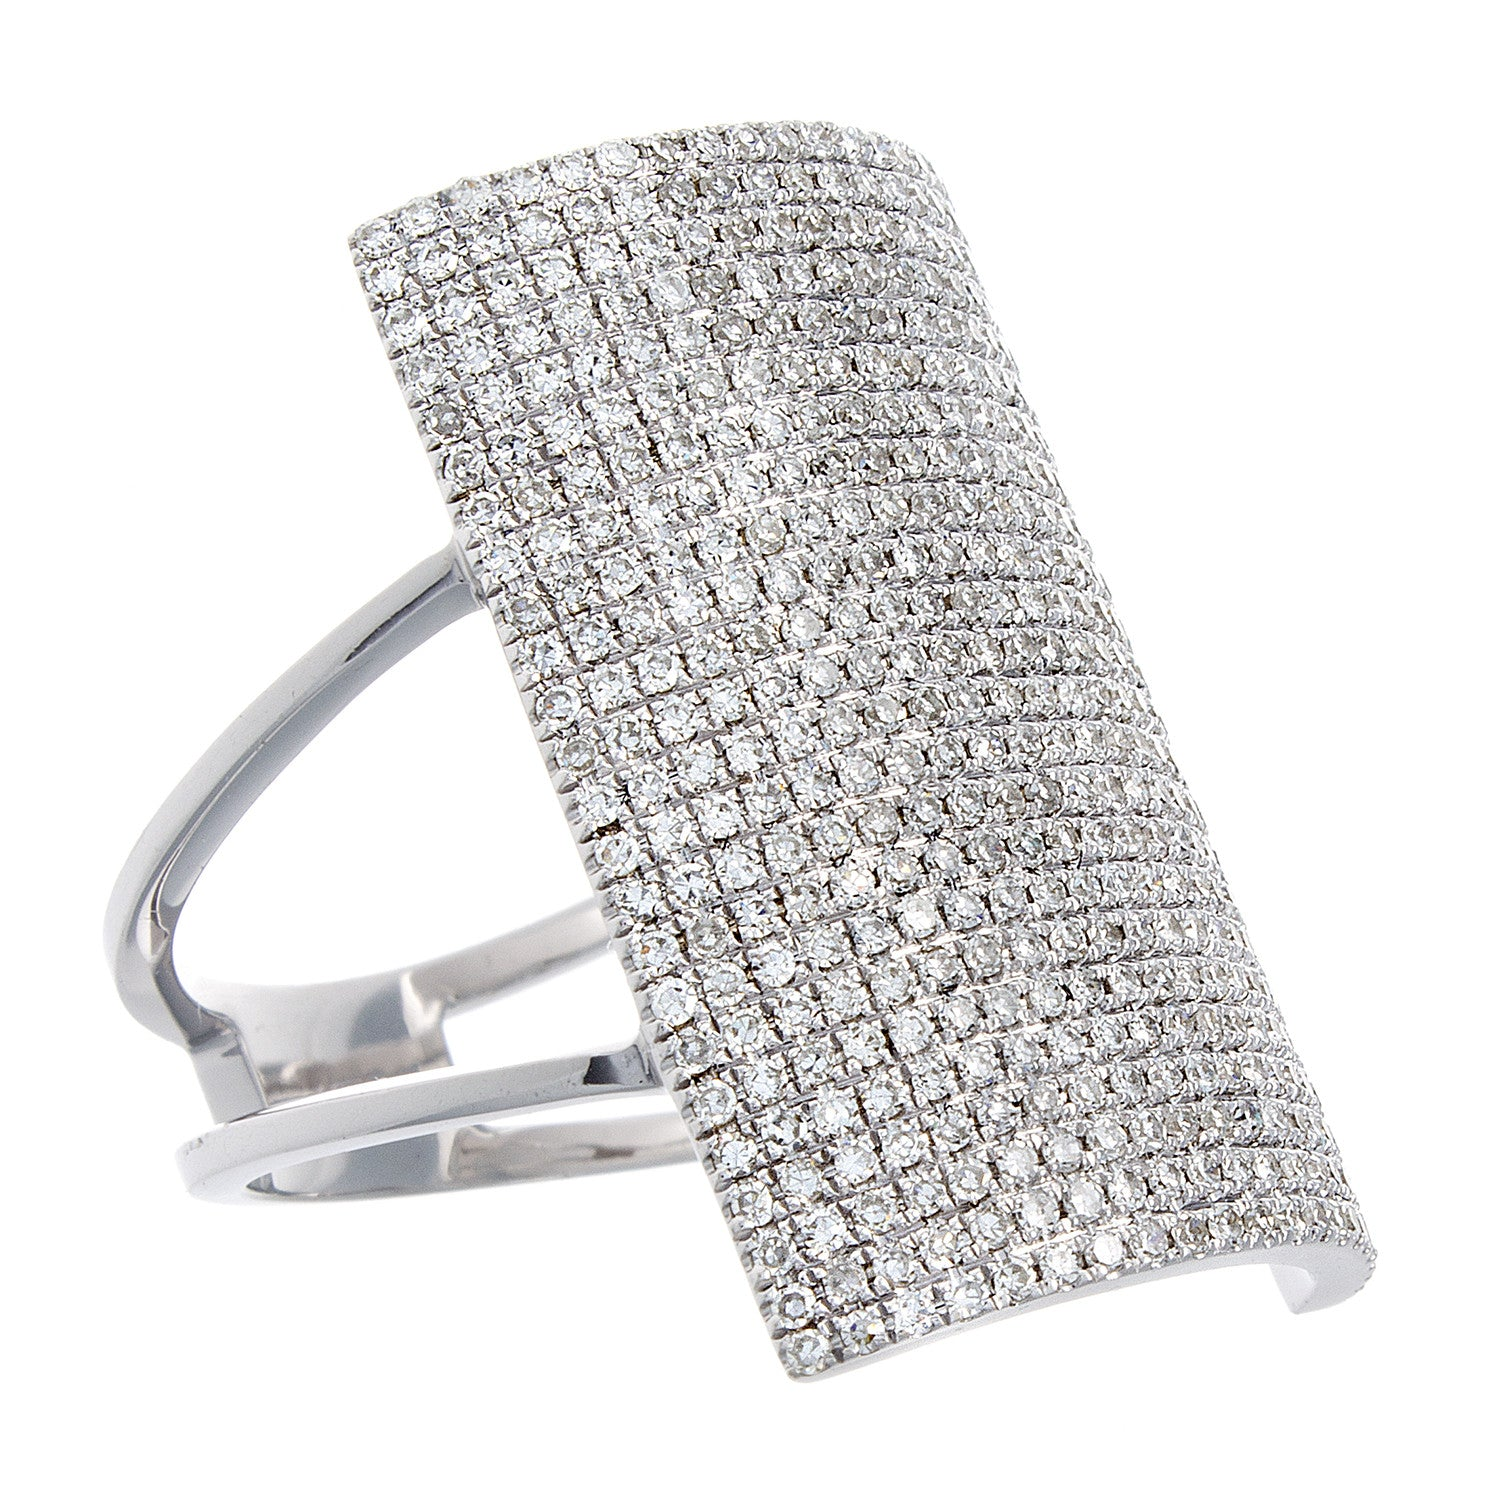 Diamond Pavé & 14K White Gold Shield Ring-SOLD/CAN BE SPECIAL ORDERED WITH 4-6 WEEKS DELIVERY TIME FRAME